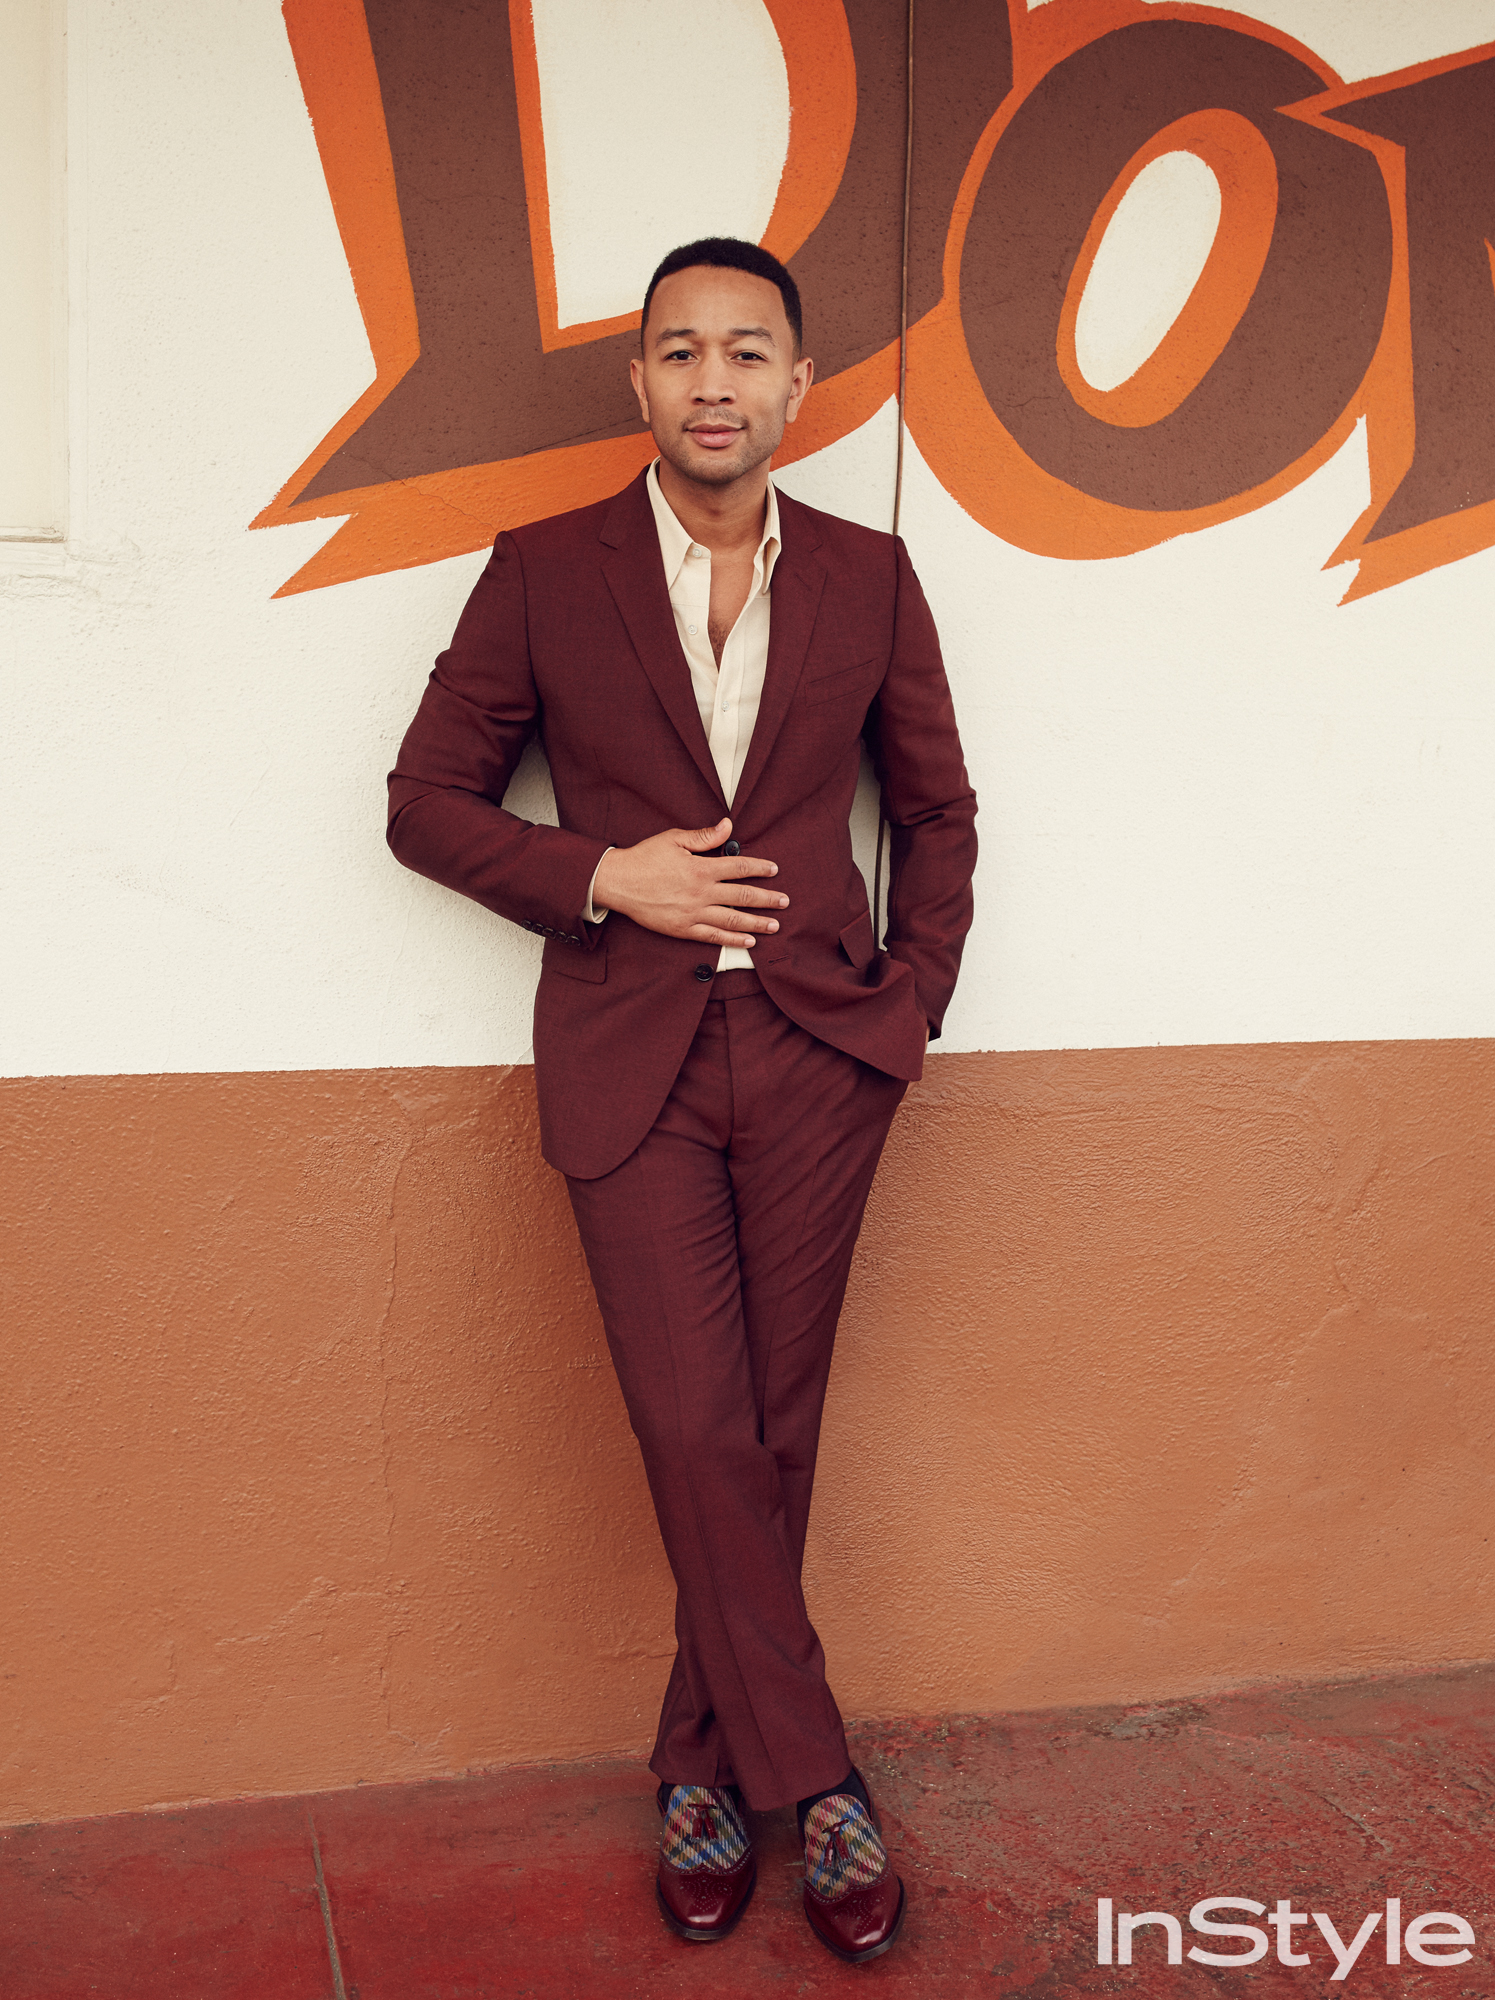 John Legend on Fatherhood and the Look That Still Makes Chrissy Teigen Swoon